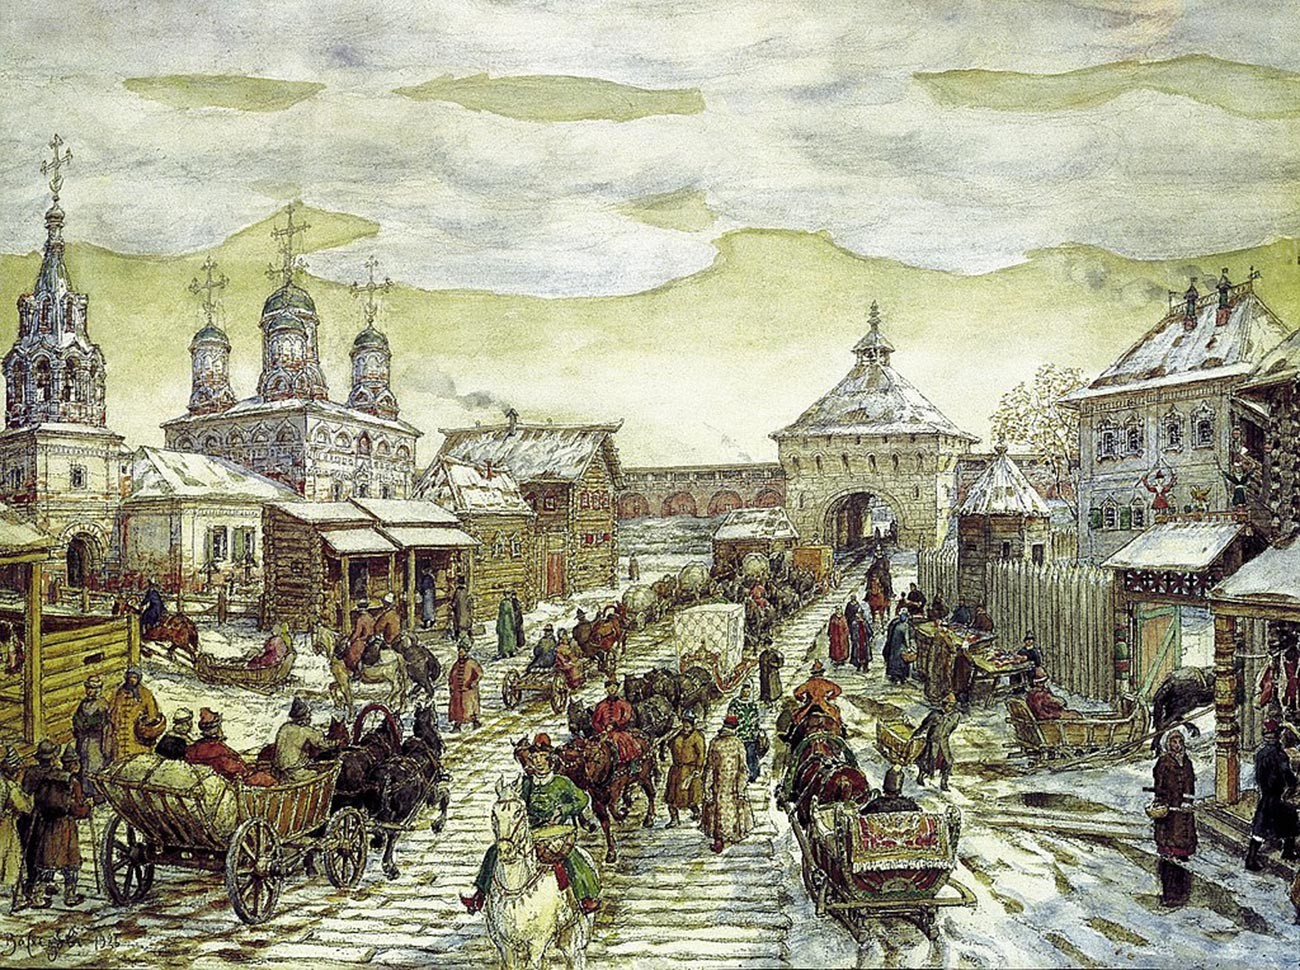 Apollinary Vasnetsov. At the Myasnitsky Gate of the White City in the 17th century